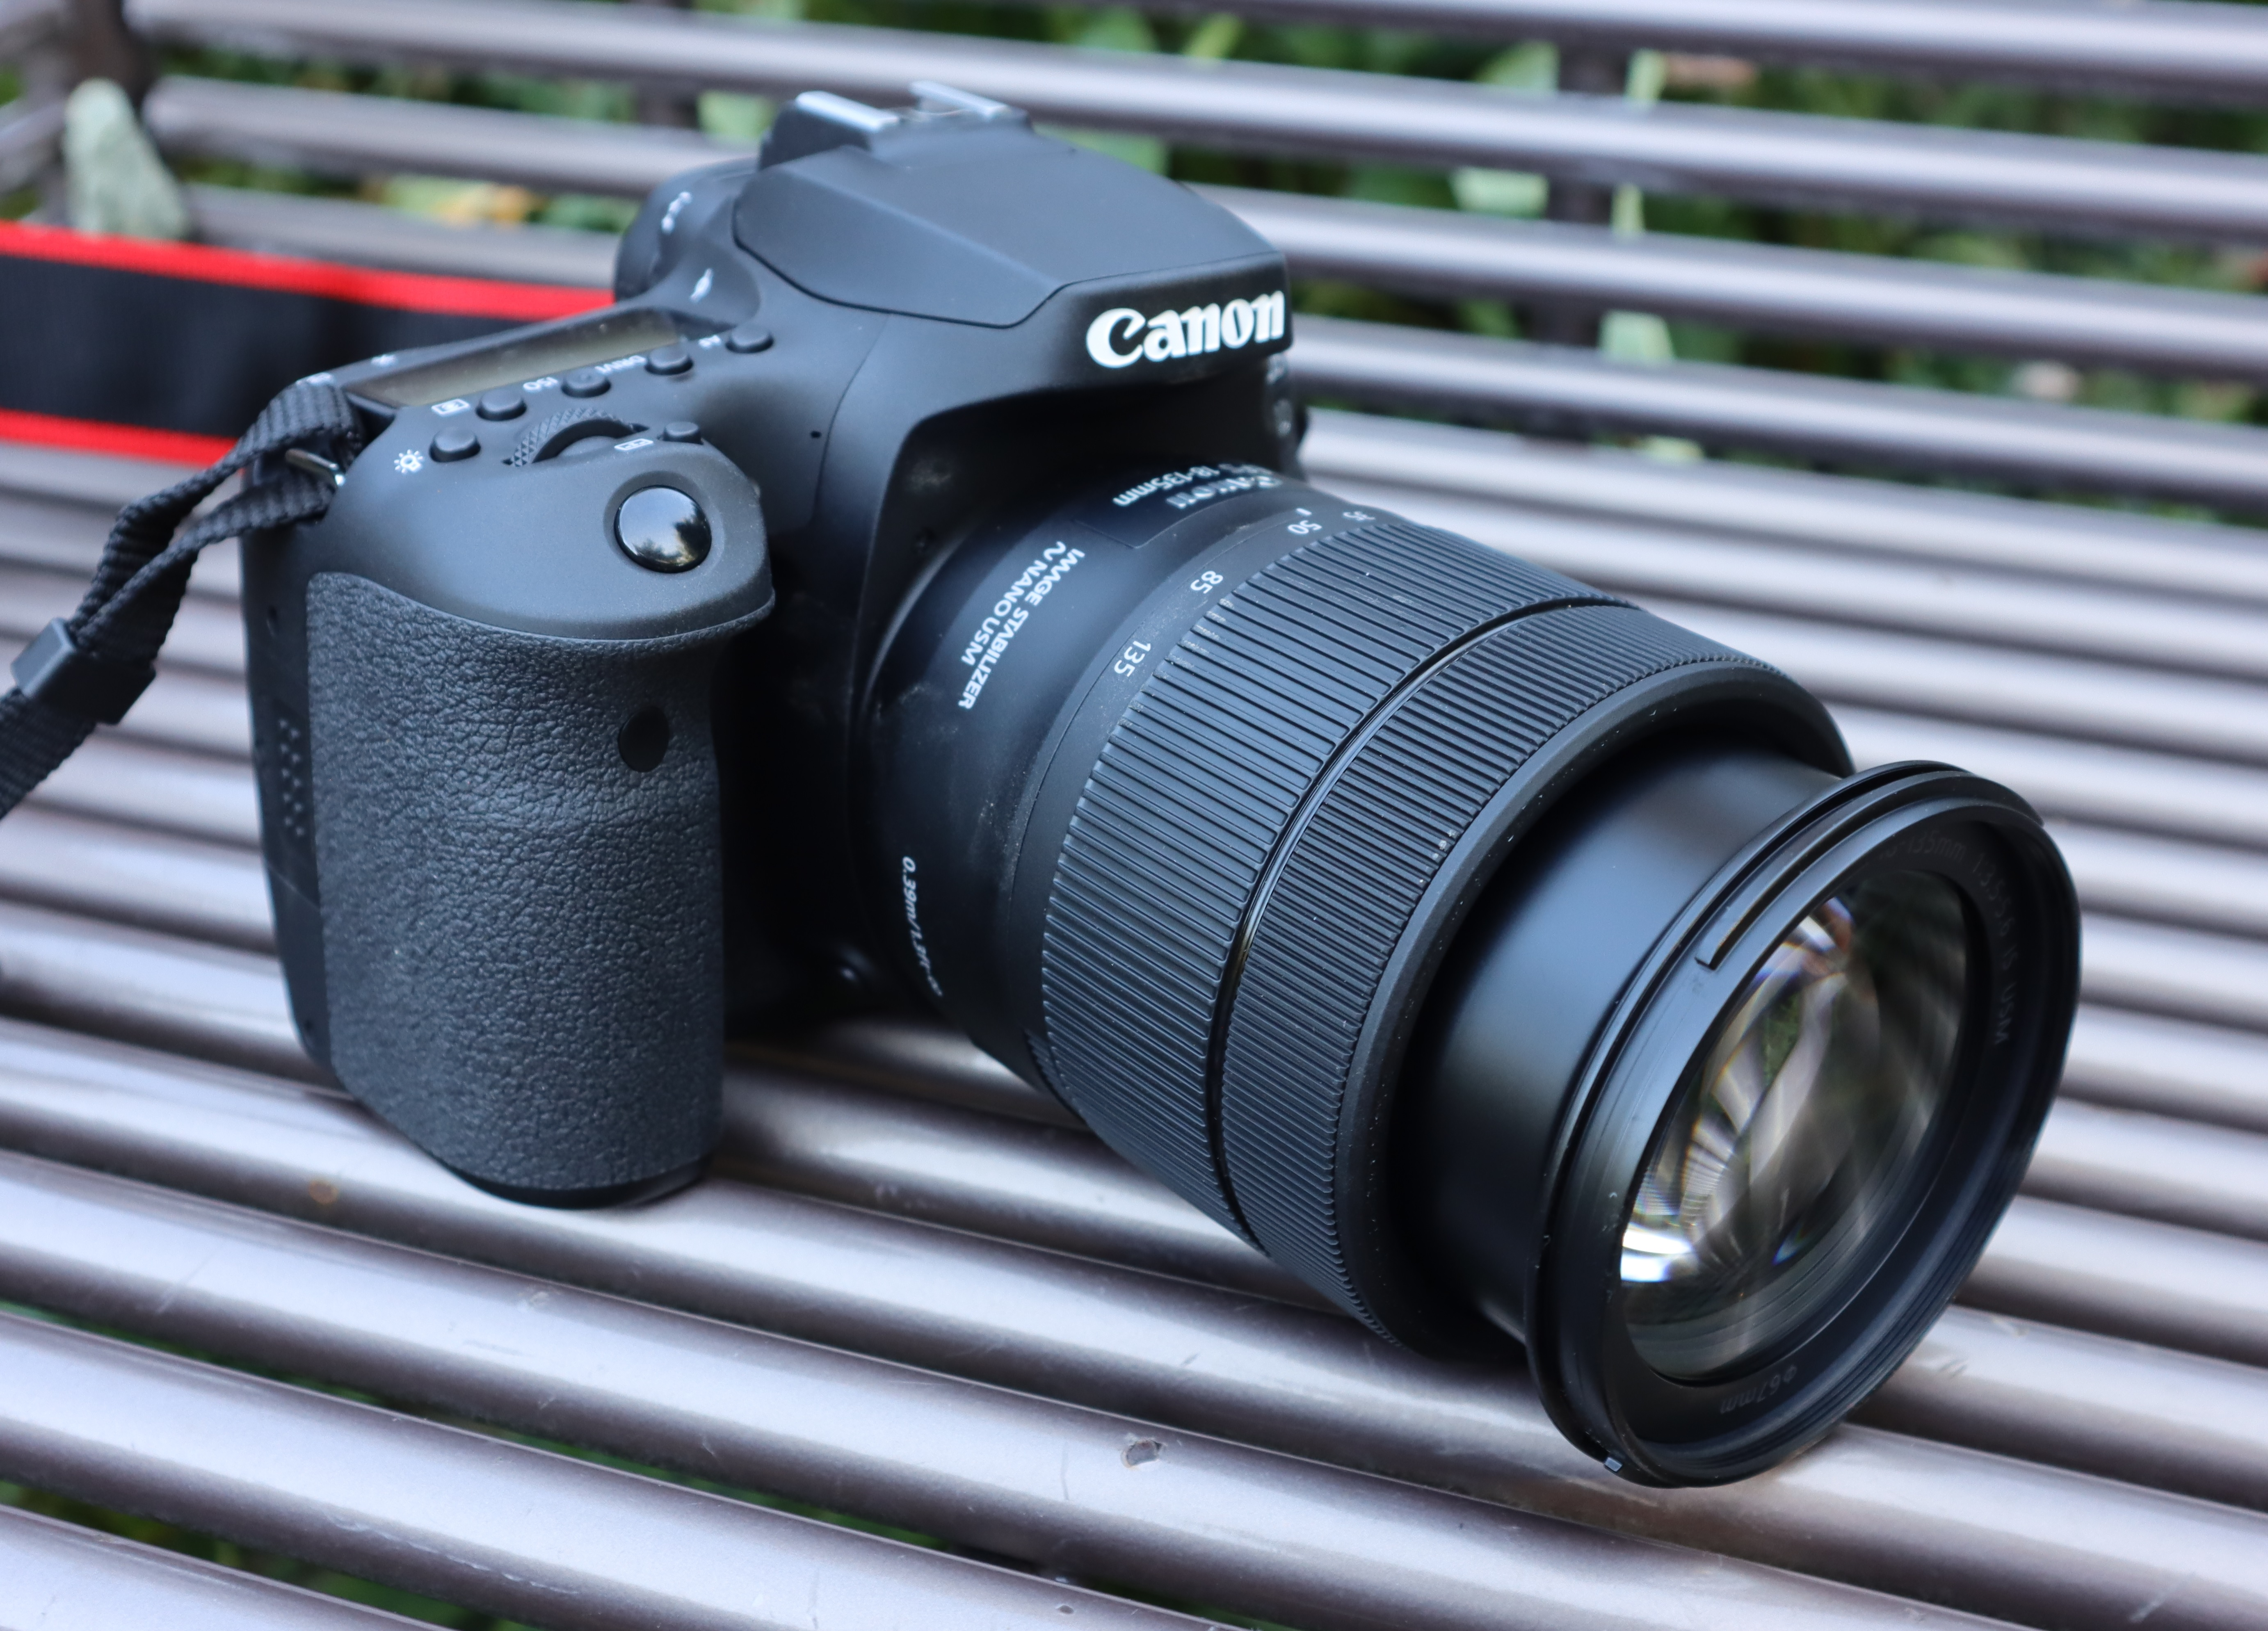 Canon 90D DSLR three-quarters right side